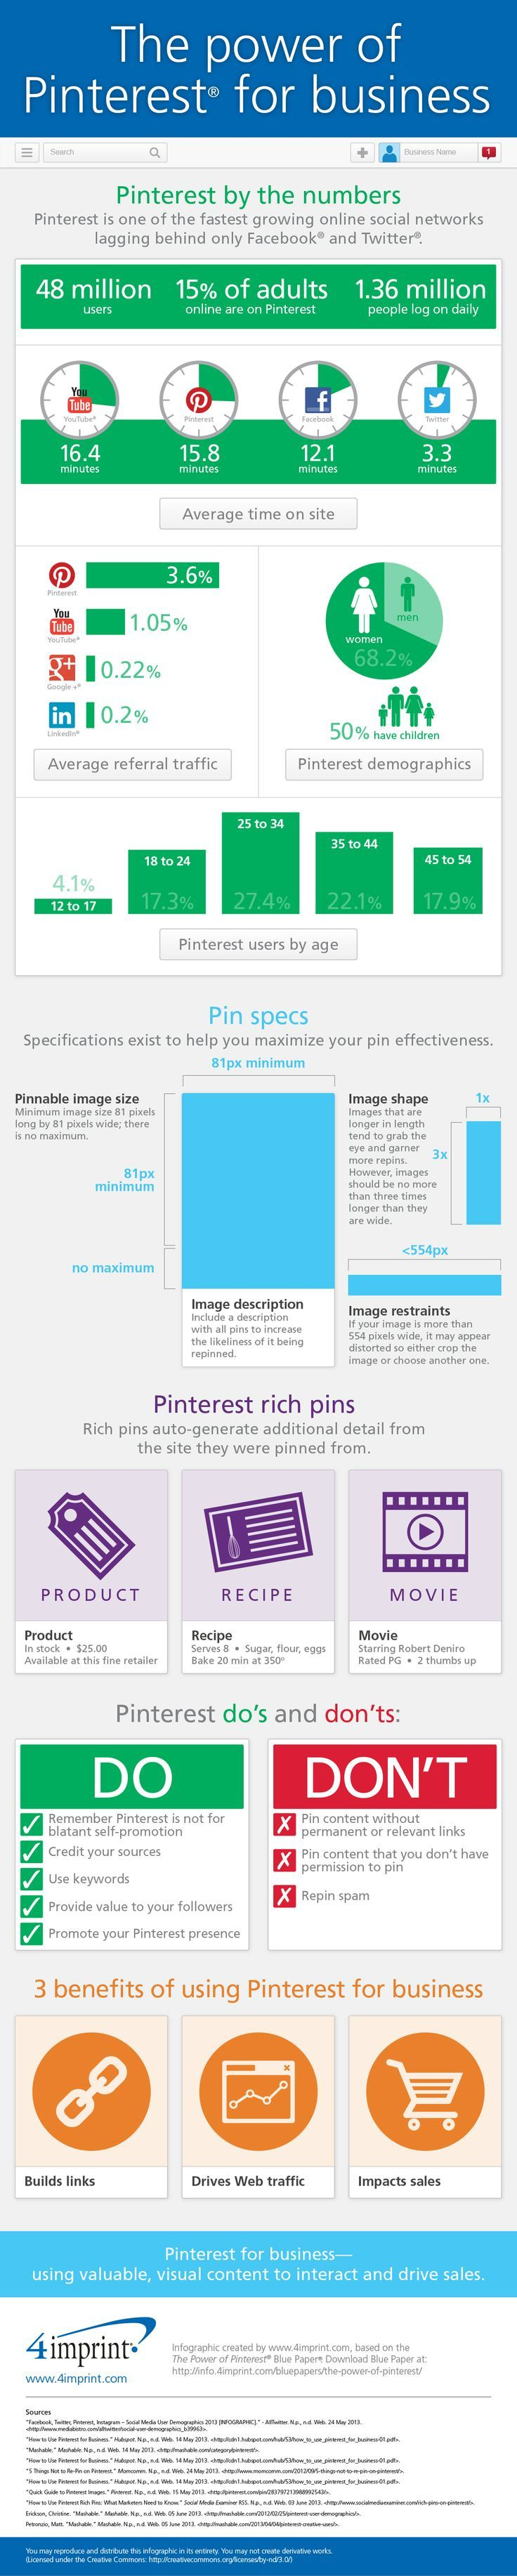 The power of Pinterest庐 for business [INFOGRAPHIC] | 4imprint Promotional Products Blog